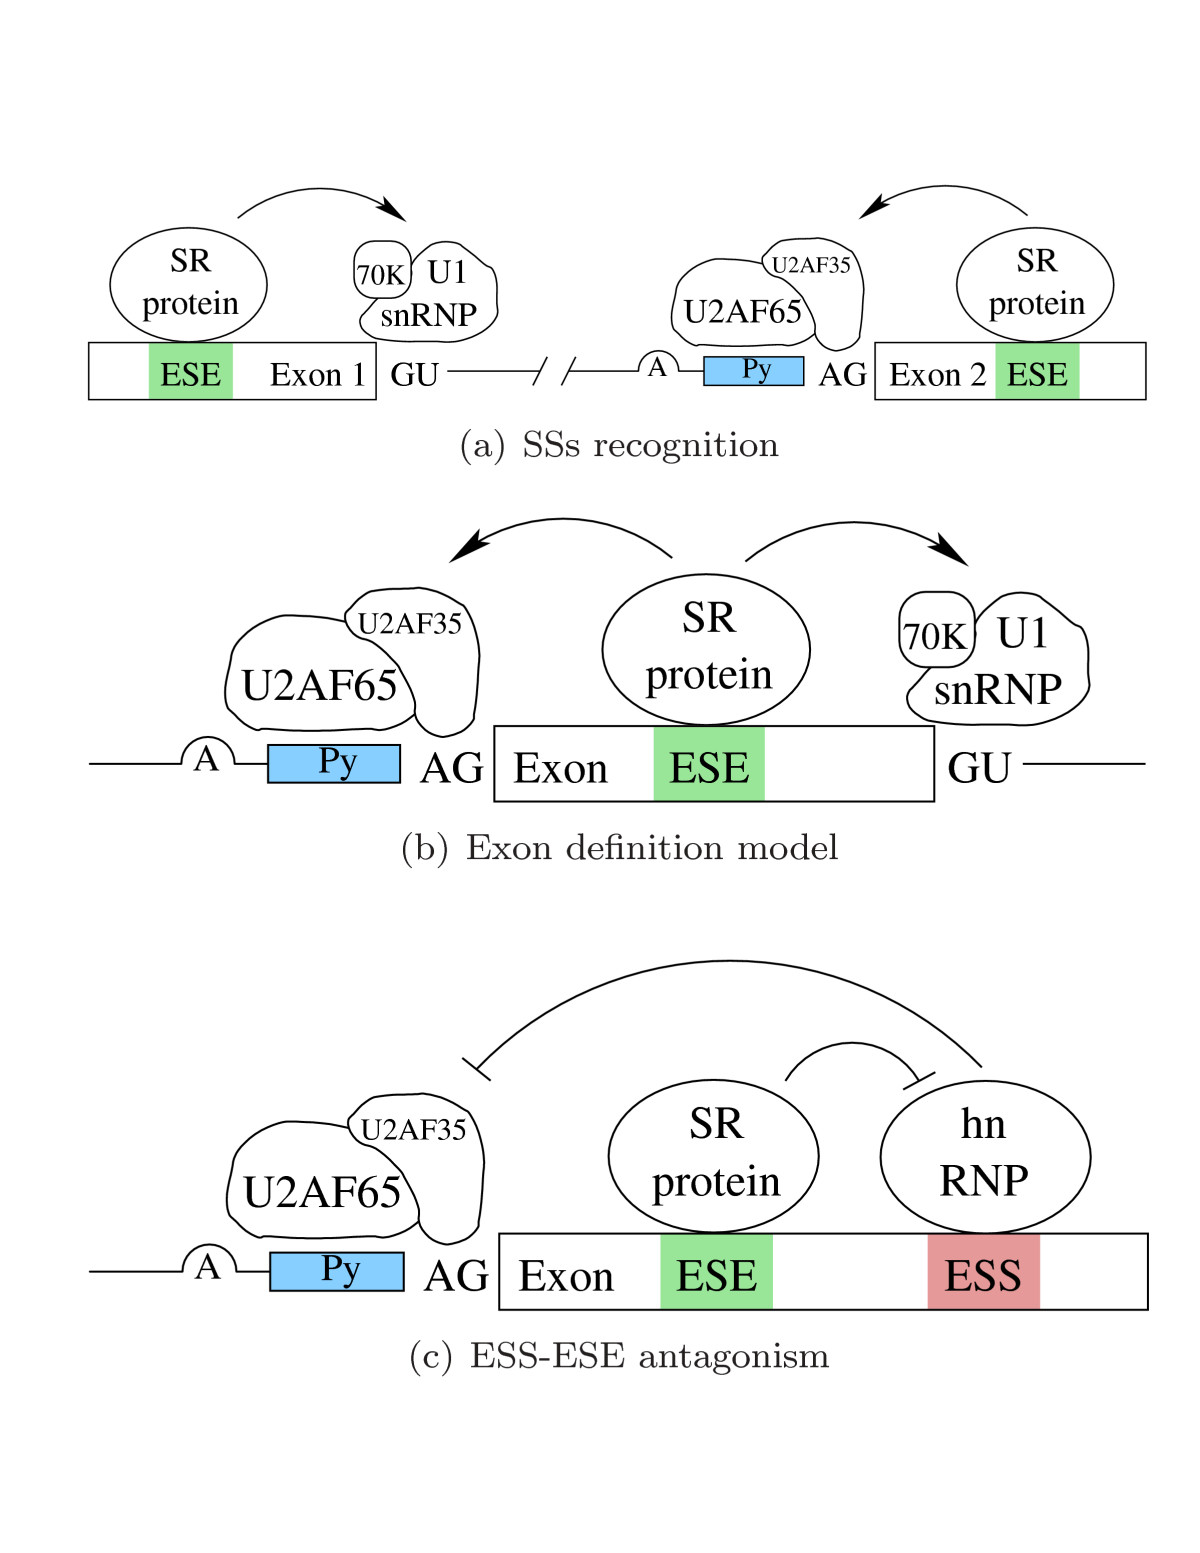 http://static-content.springer.com/image/art%3A10.1186%2F1745-6150-1-10/MediaObjects/13062_2006_Article_10_Fig2_HTML.jpg